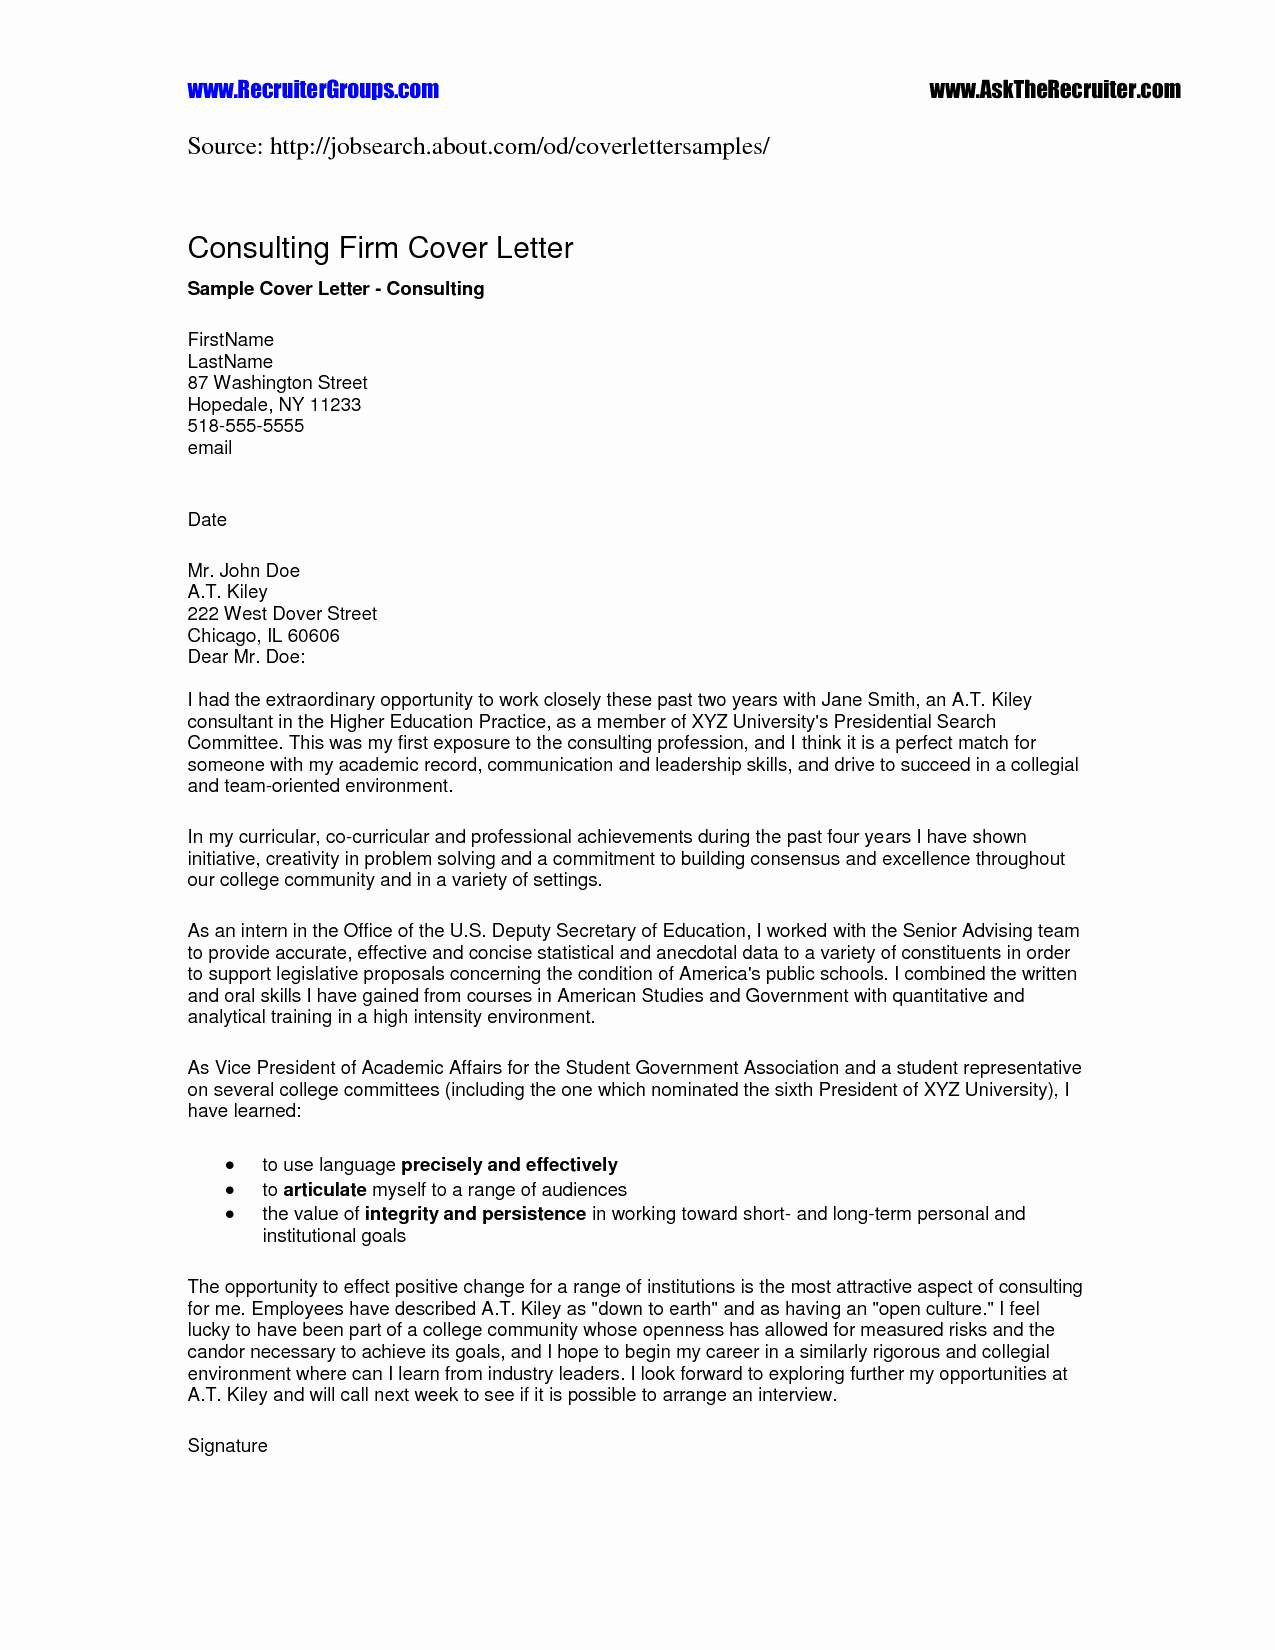 Free Online Resume Cover Letter Template - Free Infographic Resume Templates Perfect Infographic Resume